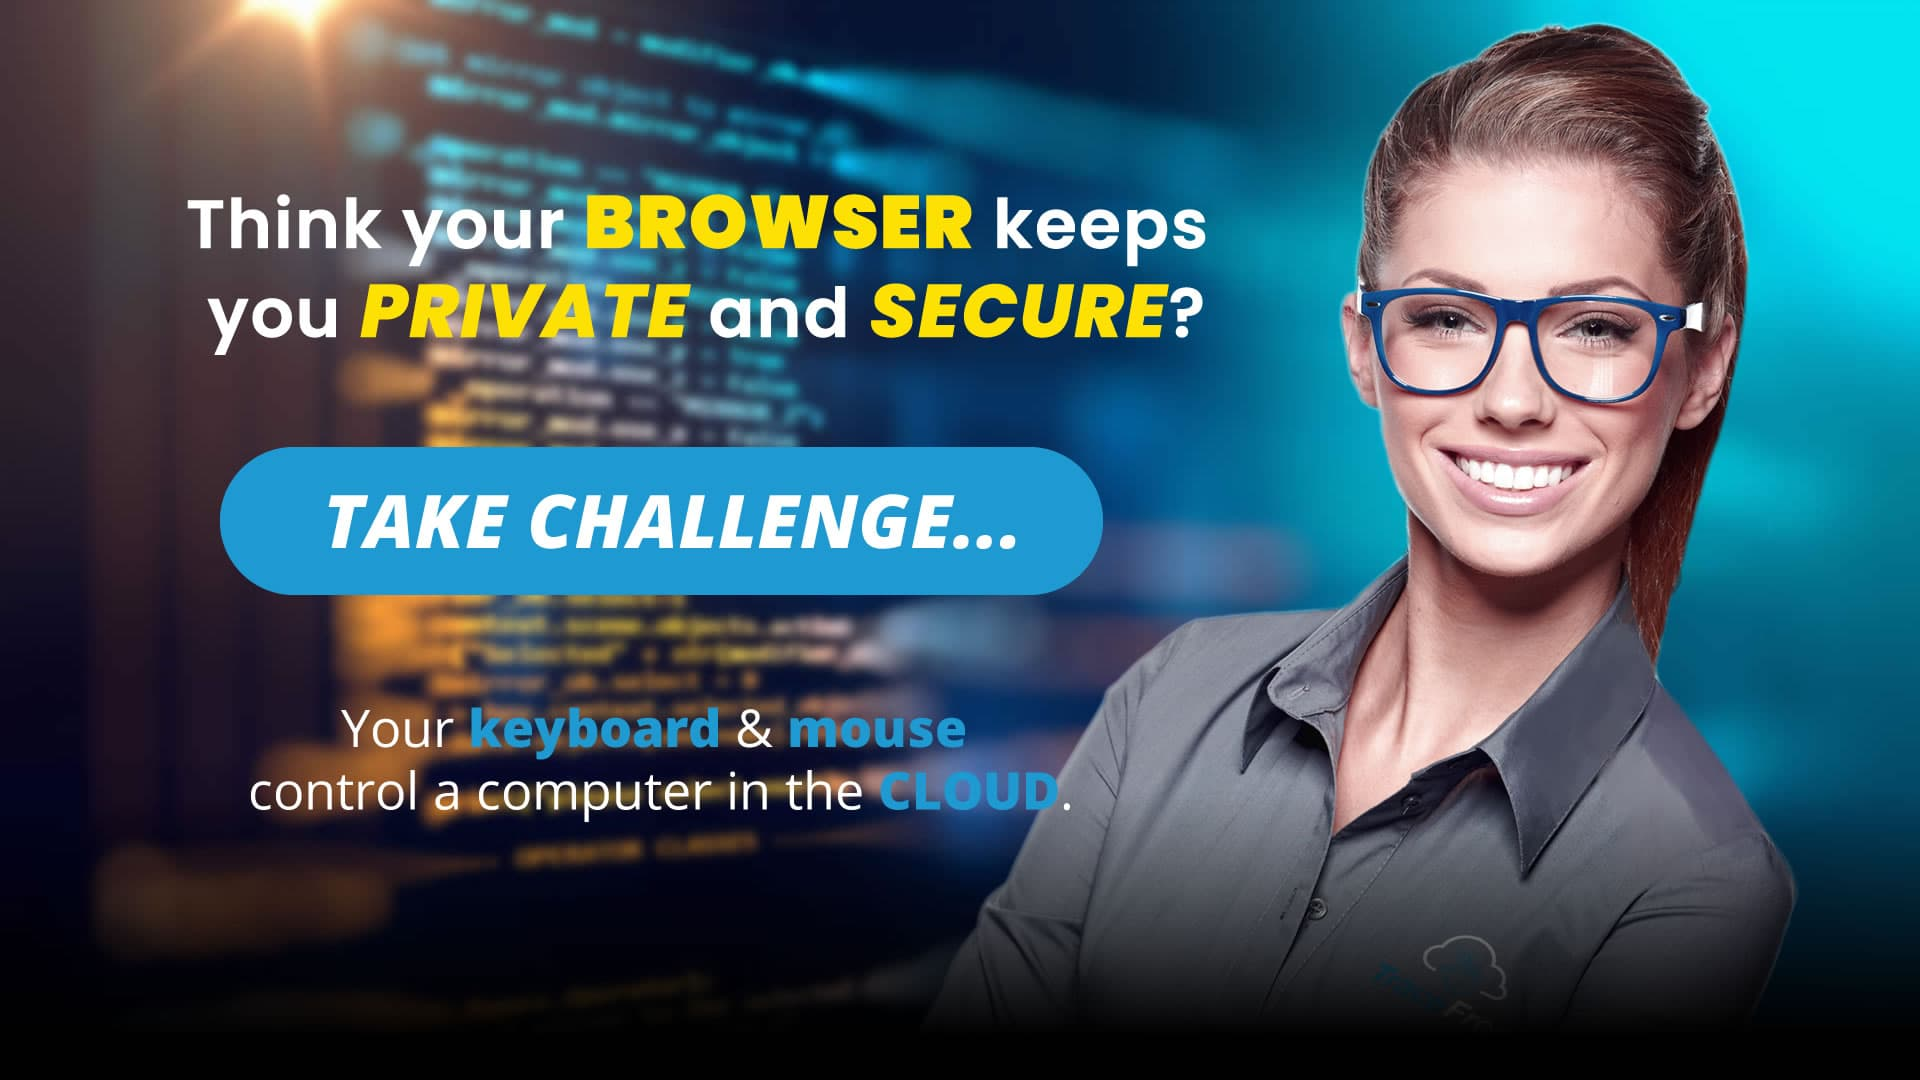 Think your browser keeps you private and secure? Find out with the TraceFree Challenge.